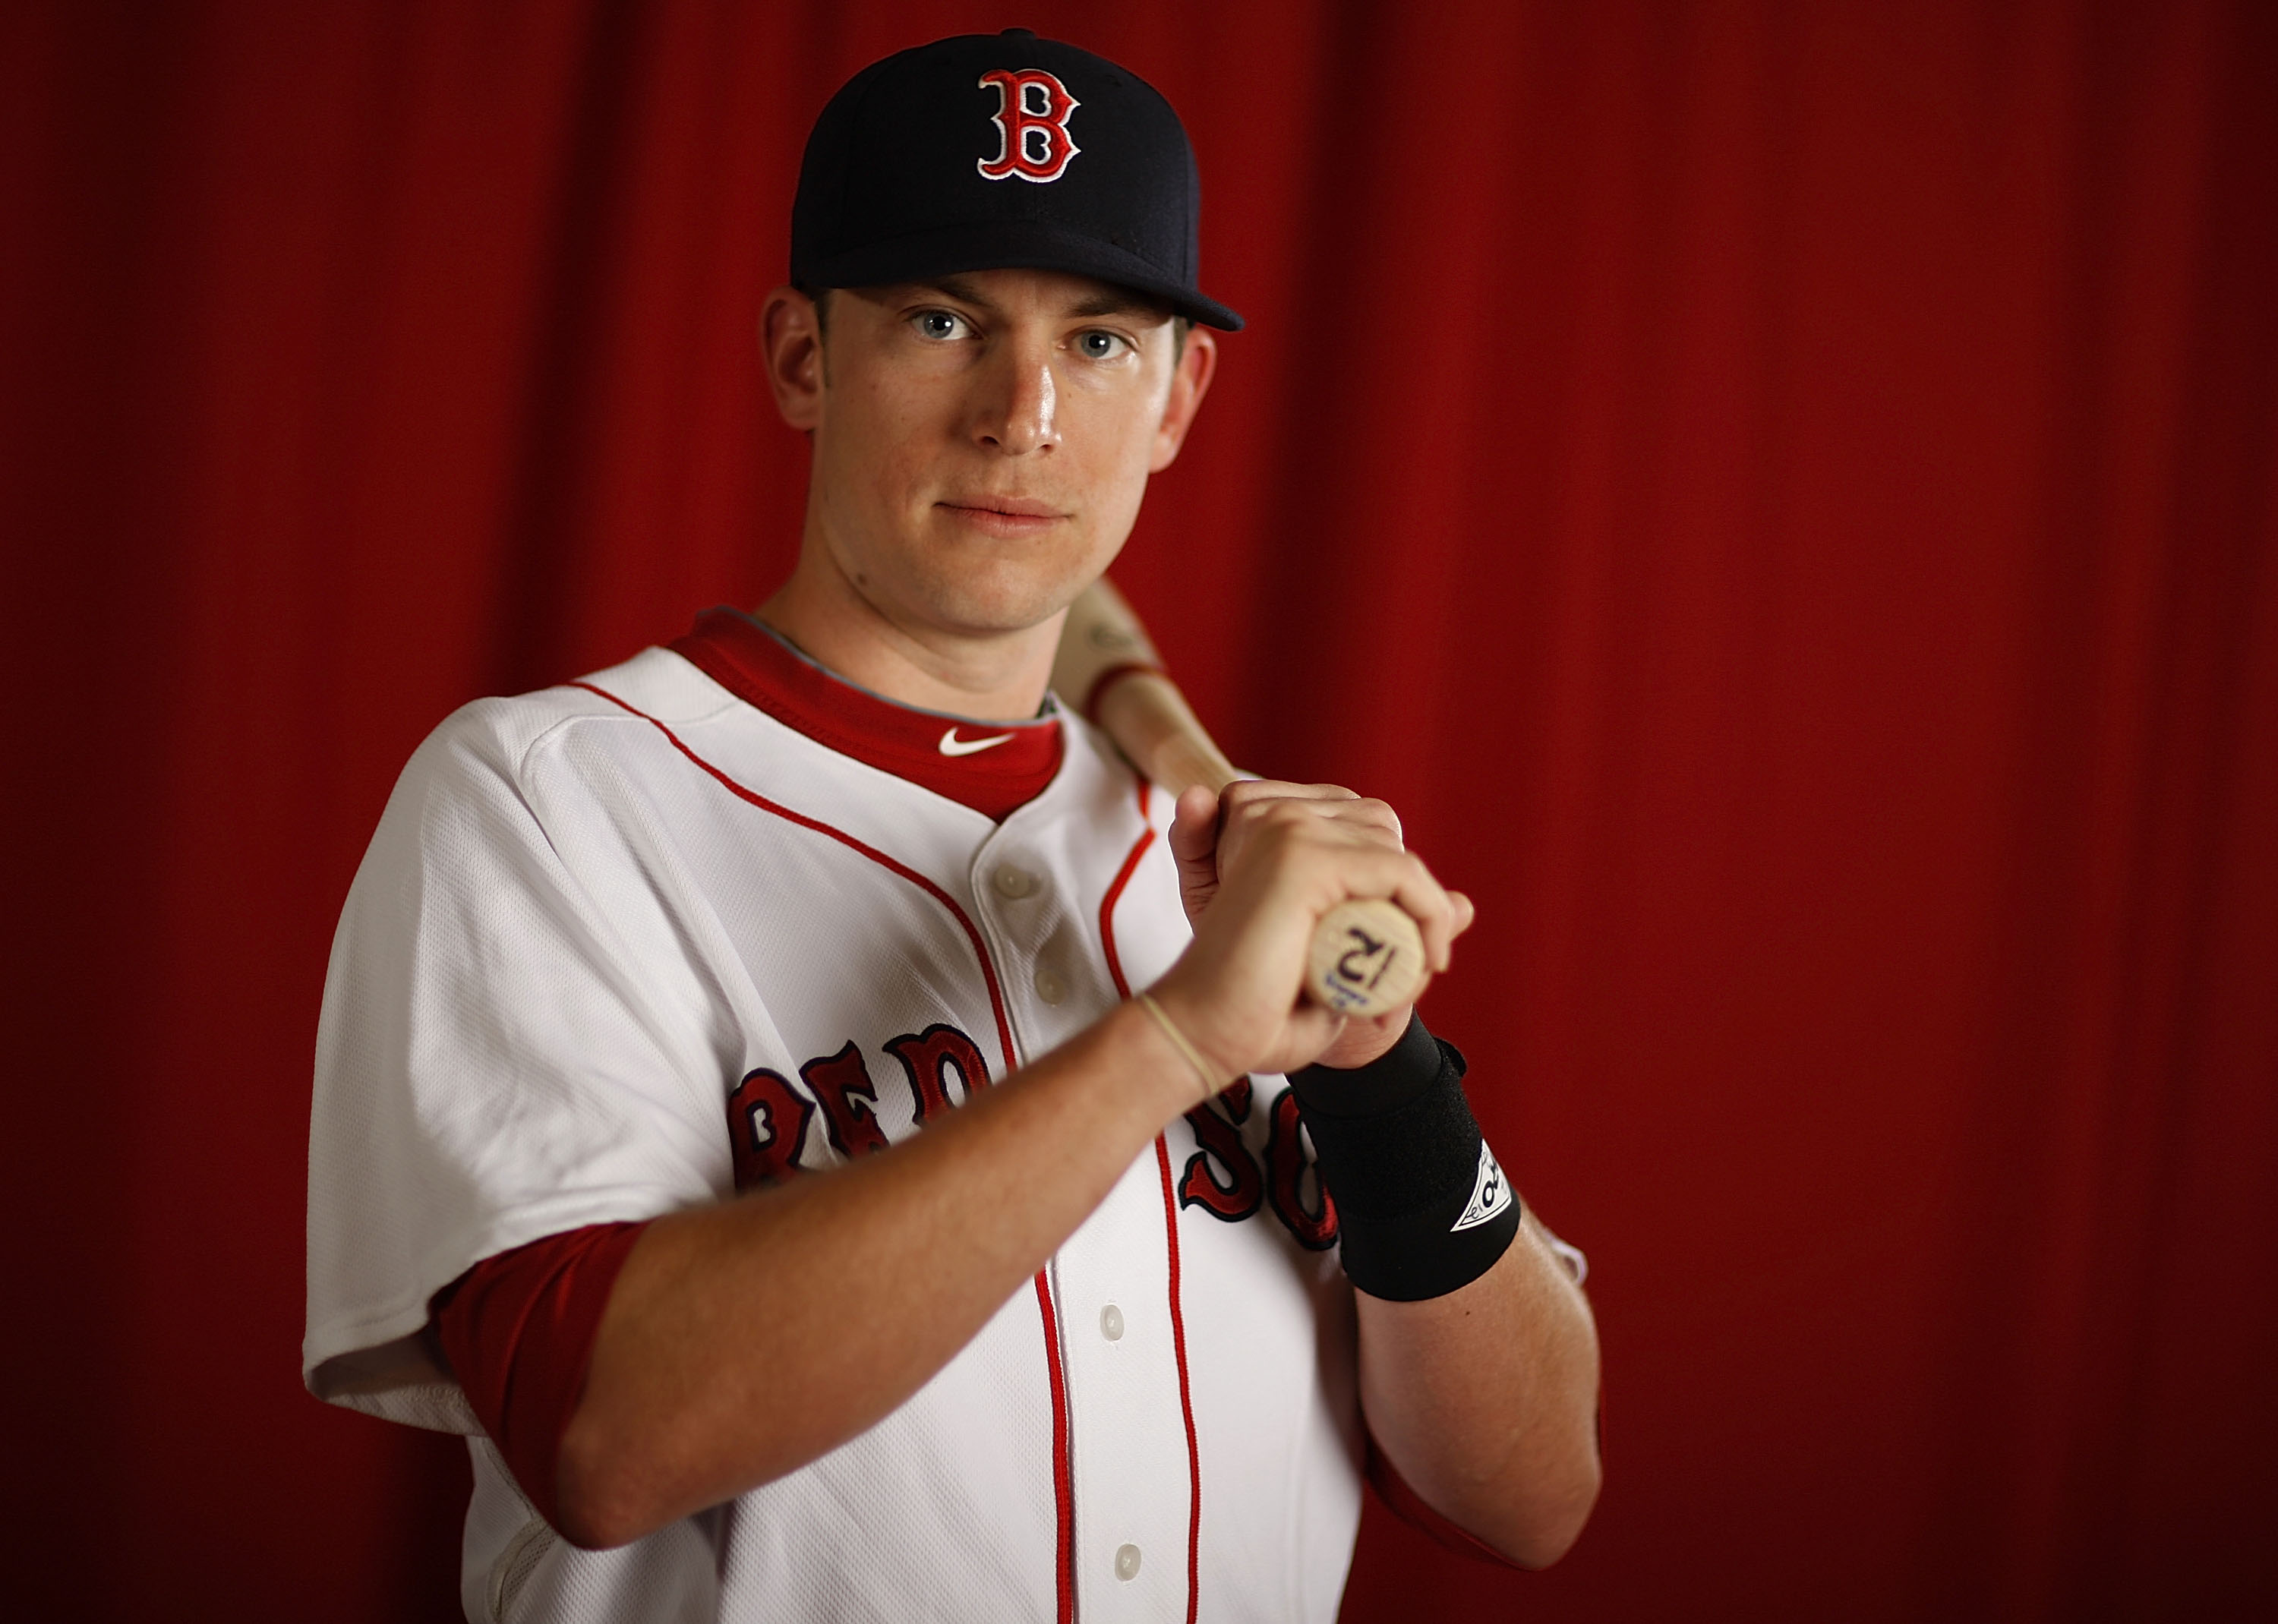 Red Sox infielder Jed Lowrie is one of mt Top 10 Sleepers for 2011